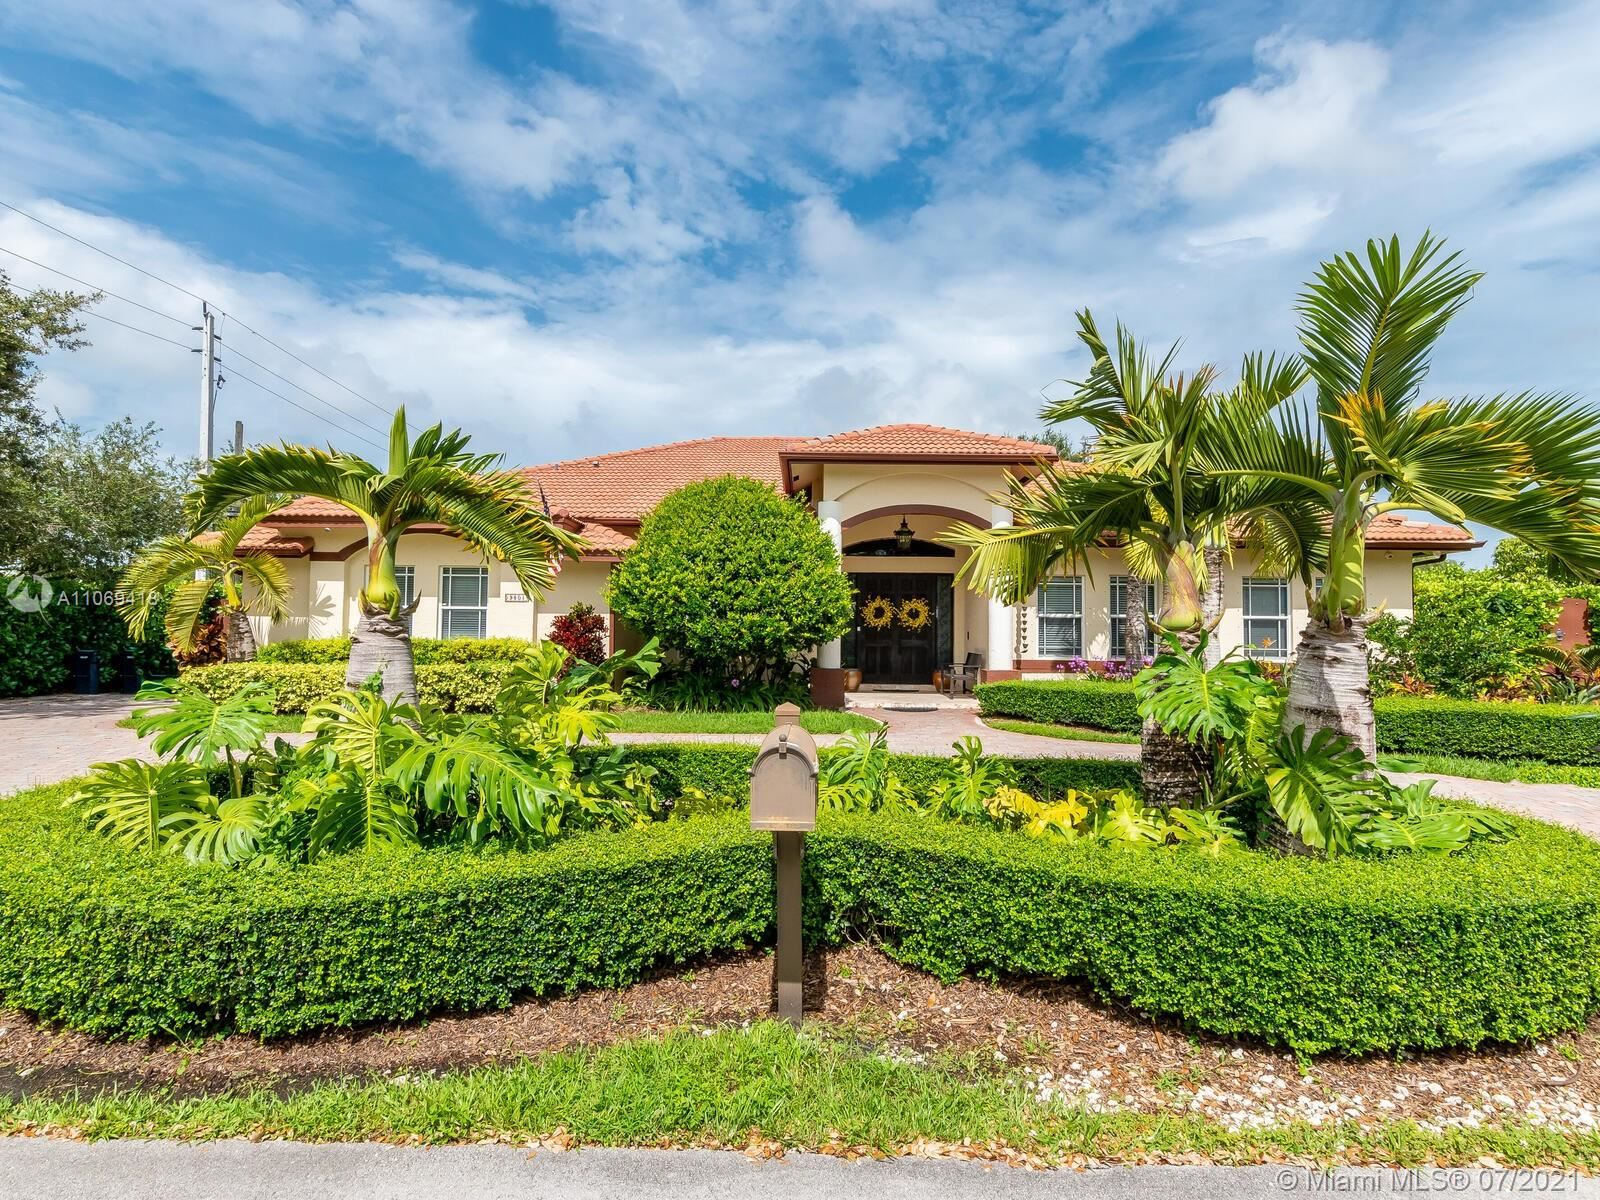 9801 SW 73rd Ave, Pinecrest, FL 33156 - #: A11069418